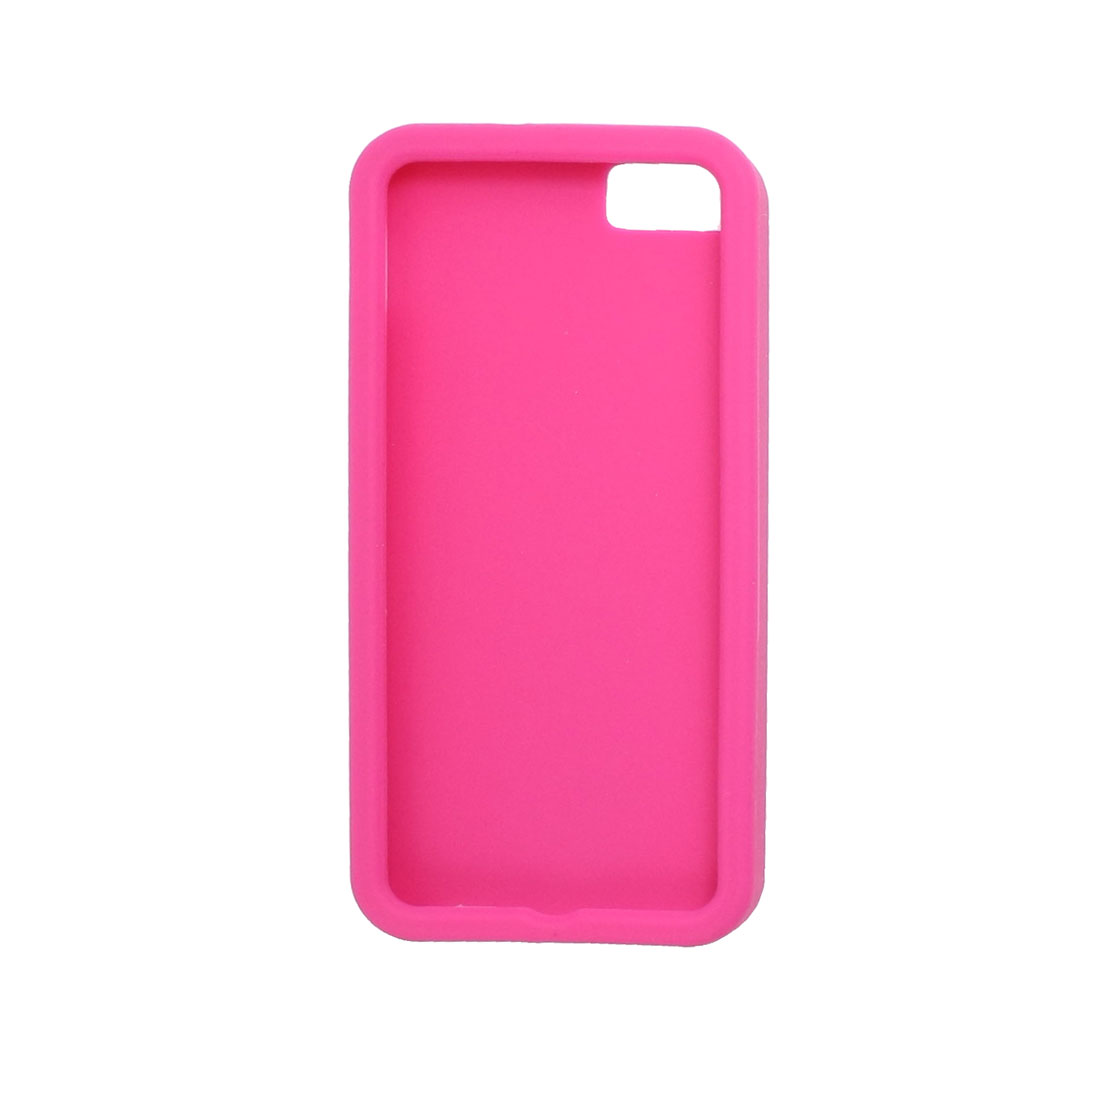 Silicone Solid Color Shield Cover Case Fuchsia for iPhone 5 5G